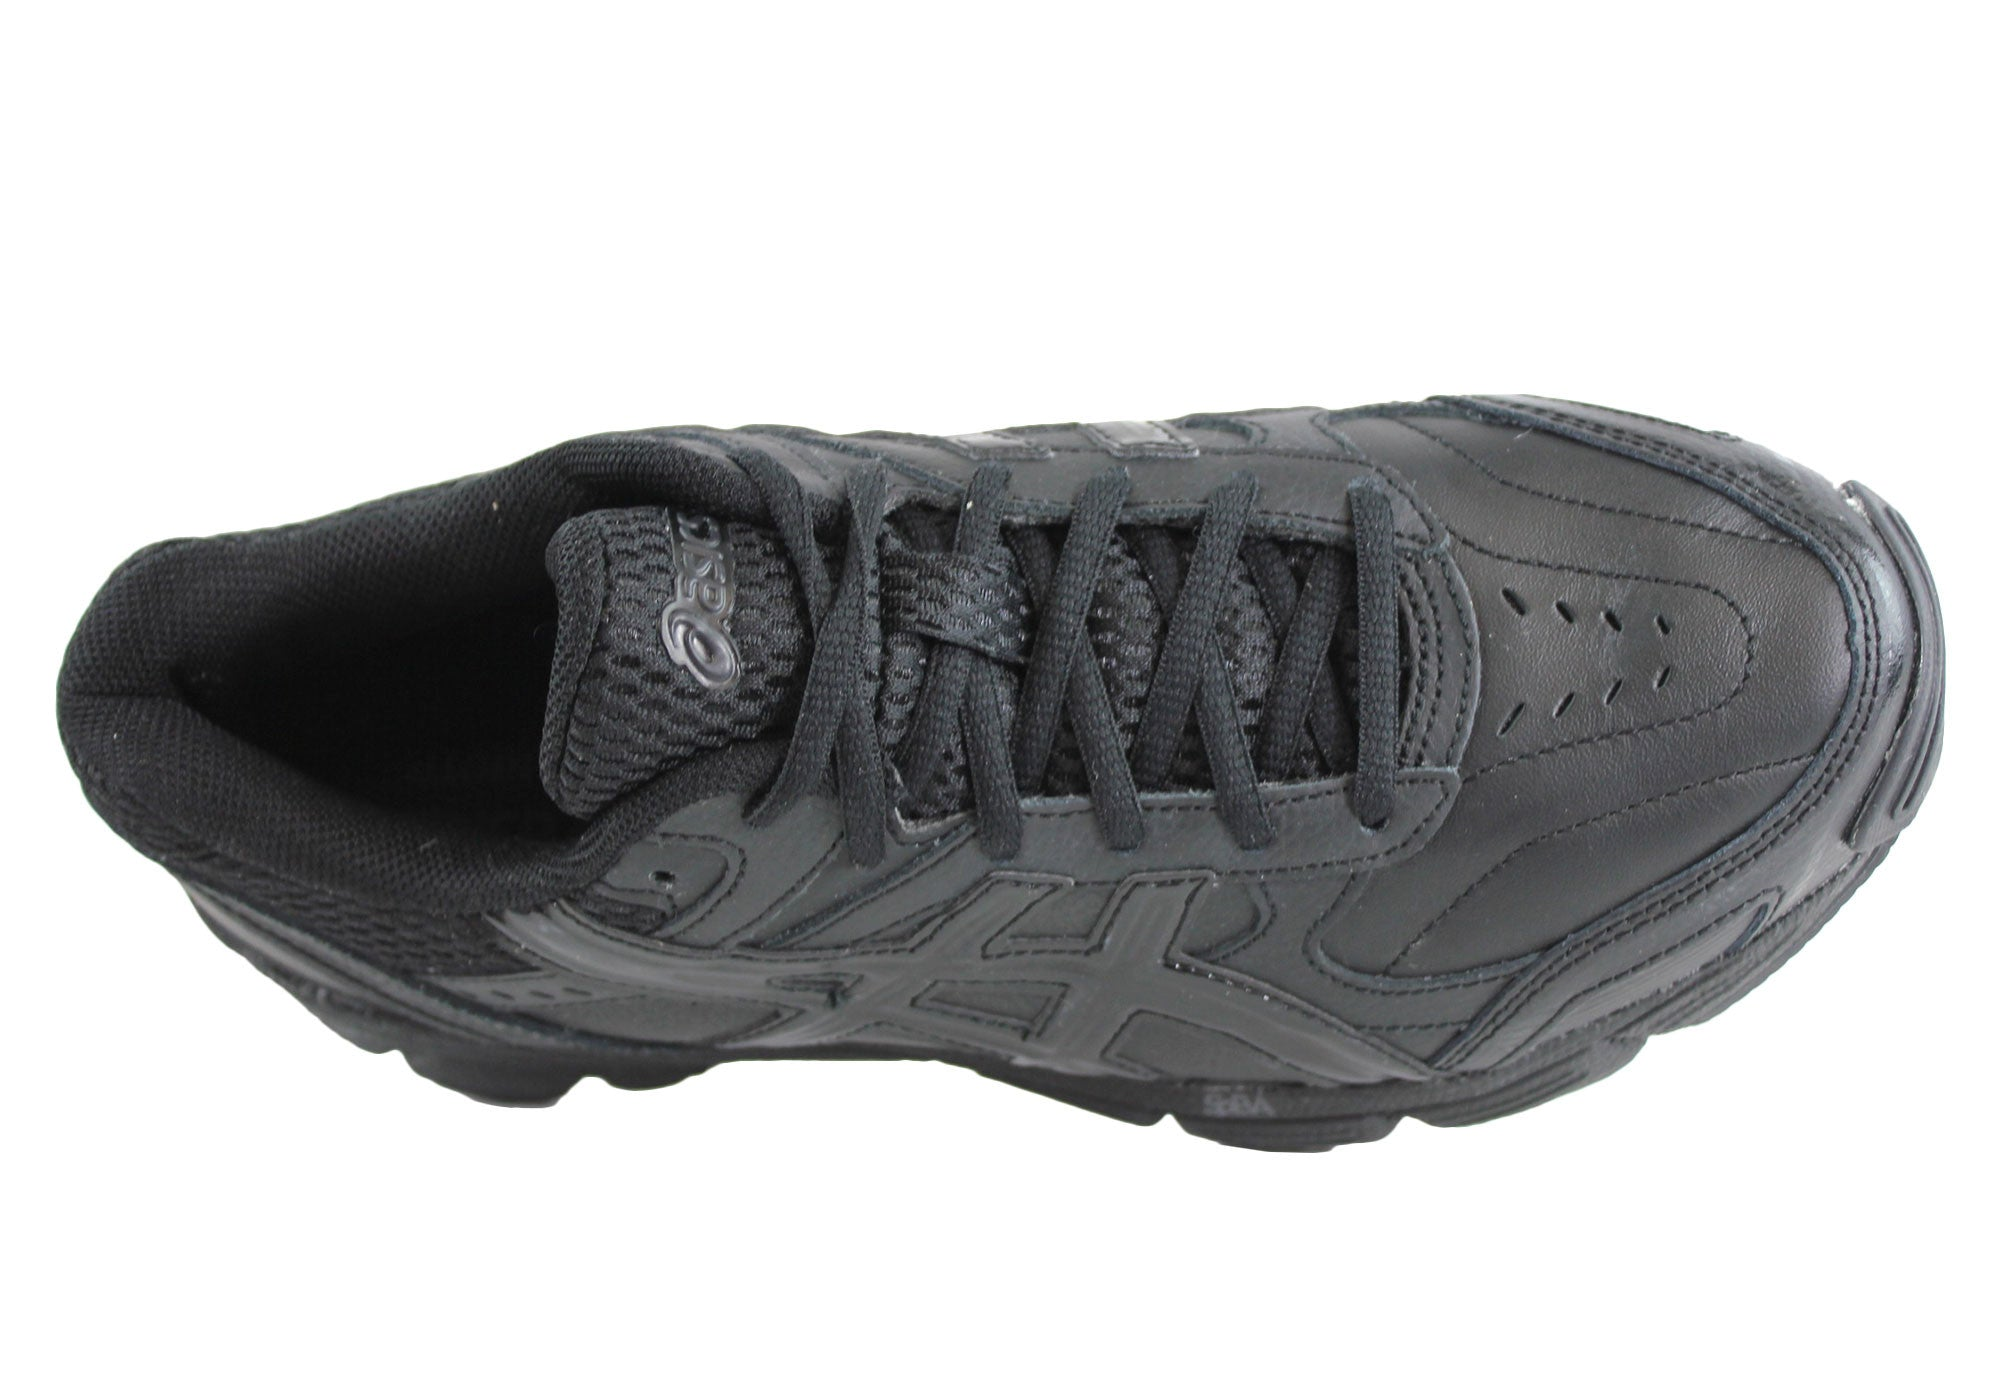 d5ea3dbf2130 Asics Gel-180 Tr Womens Leather Shoes (2E Extra Wide Fitting)